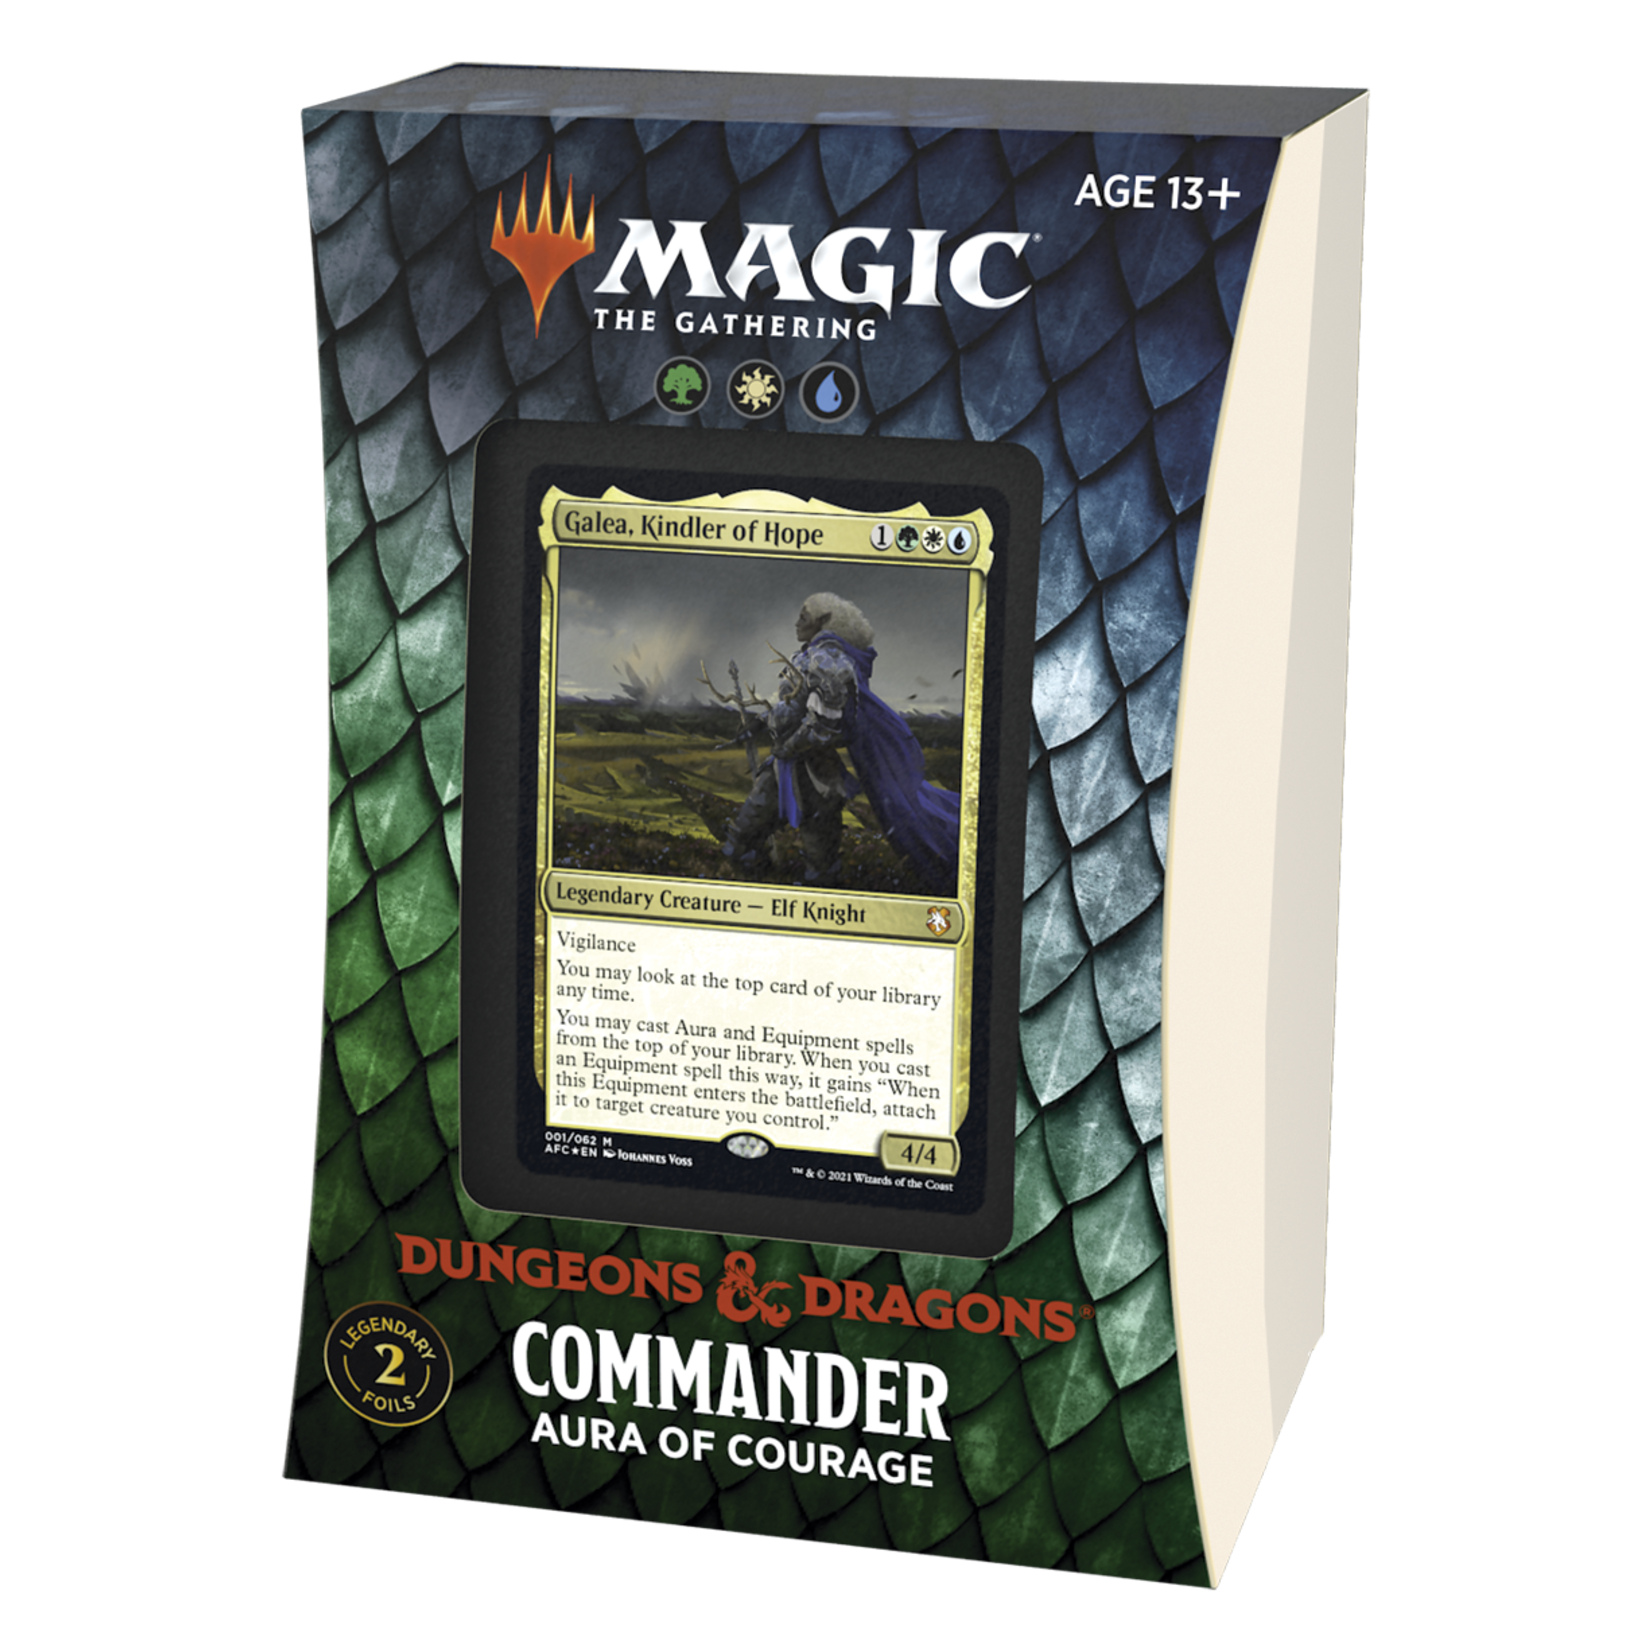 Magic: The Gathering Magic: The Gathering - Adventures in the Forgotten Realms Commander Deck - Aura of Courage